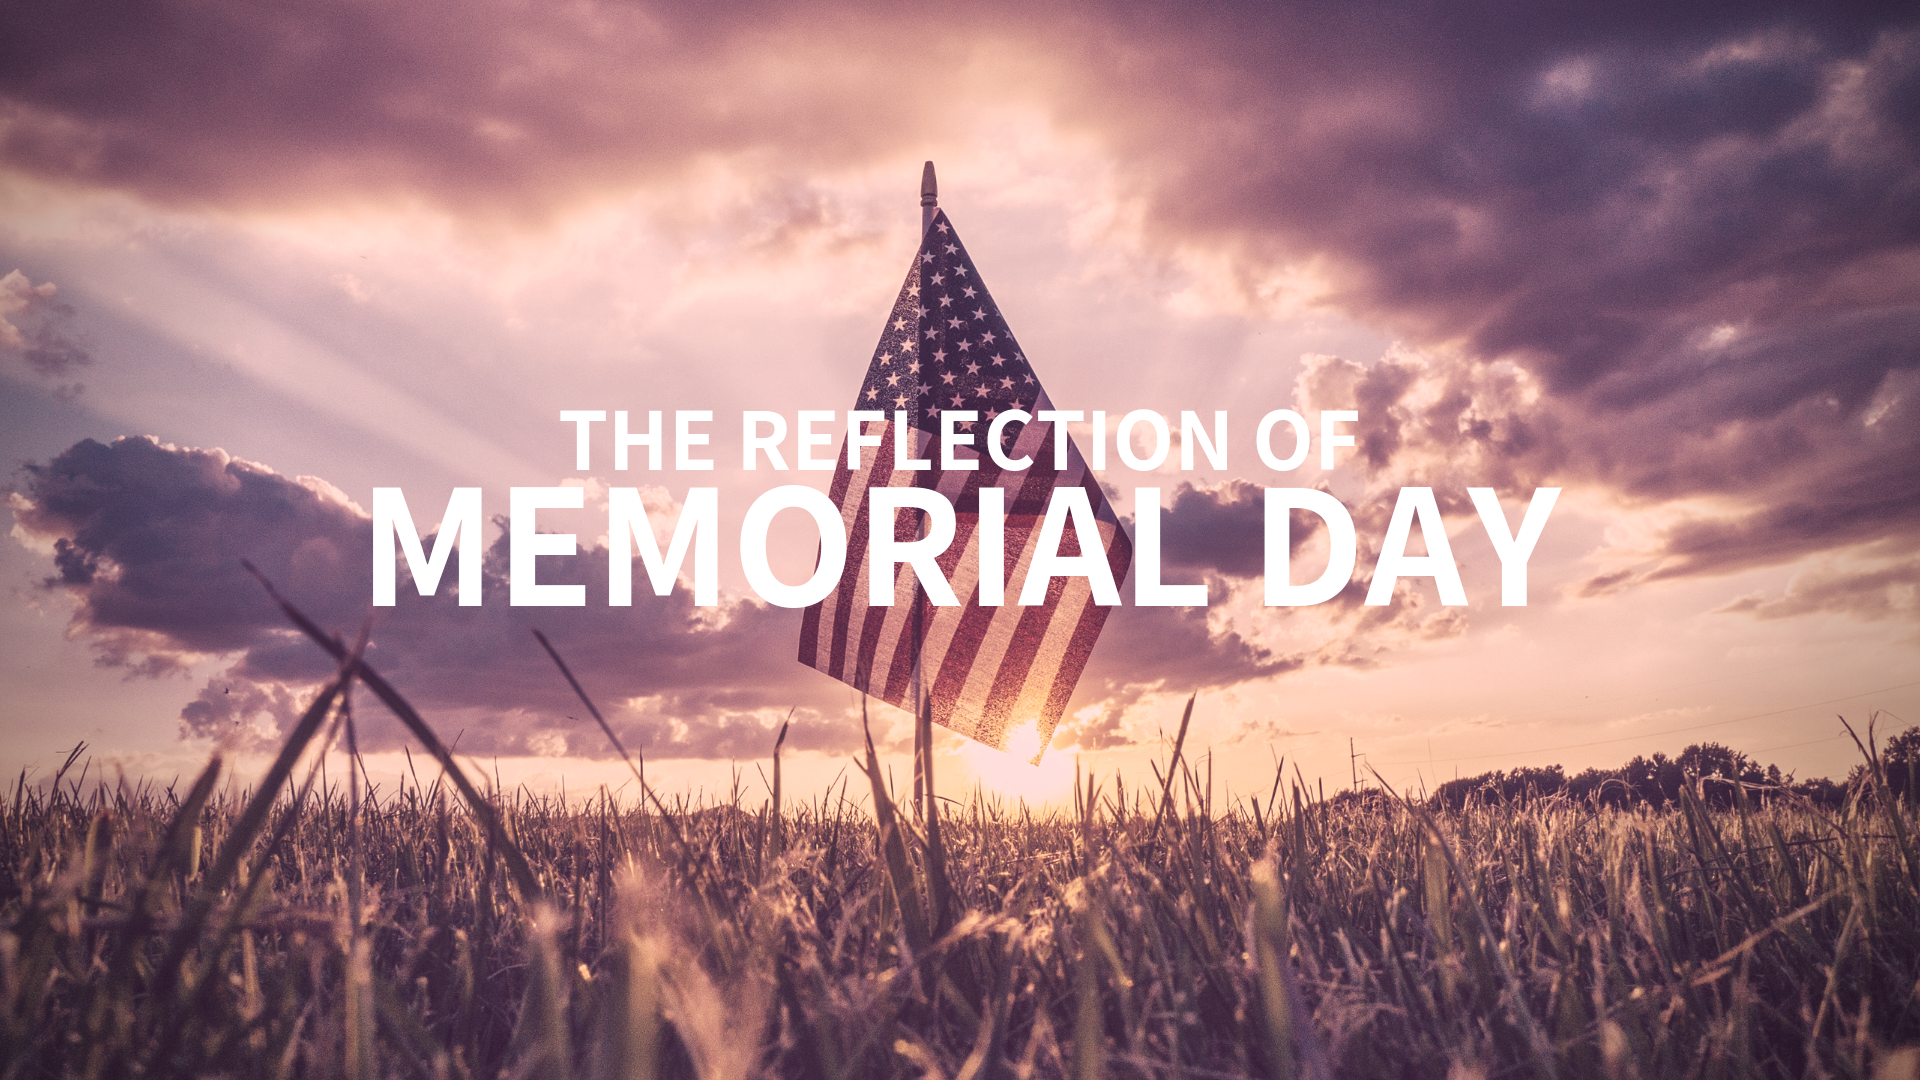 The Reflection of Memorial Day